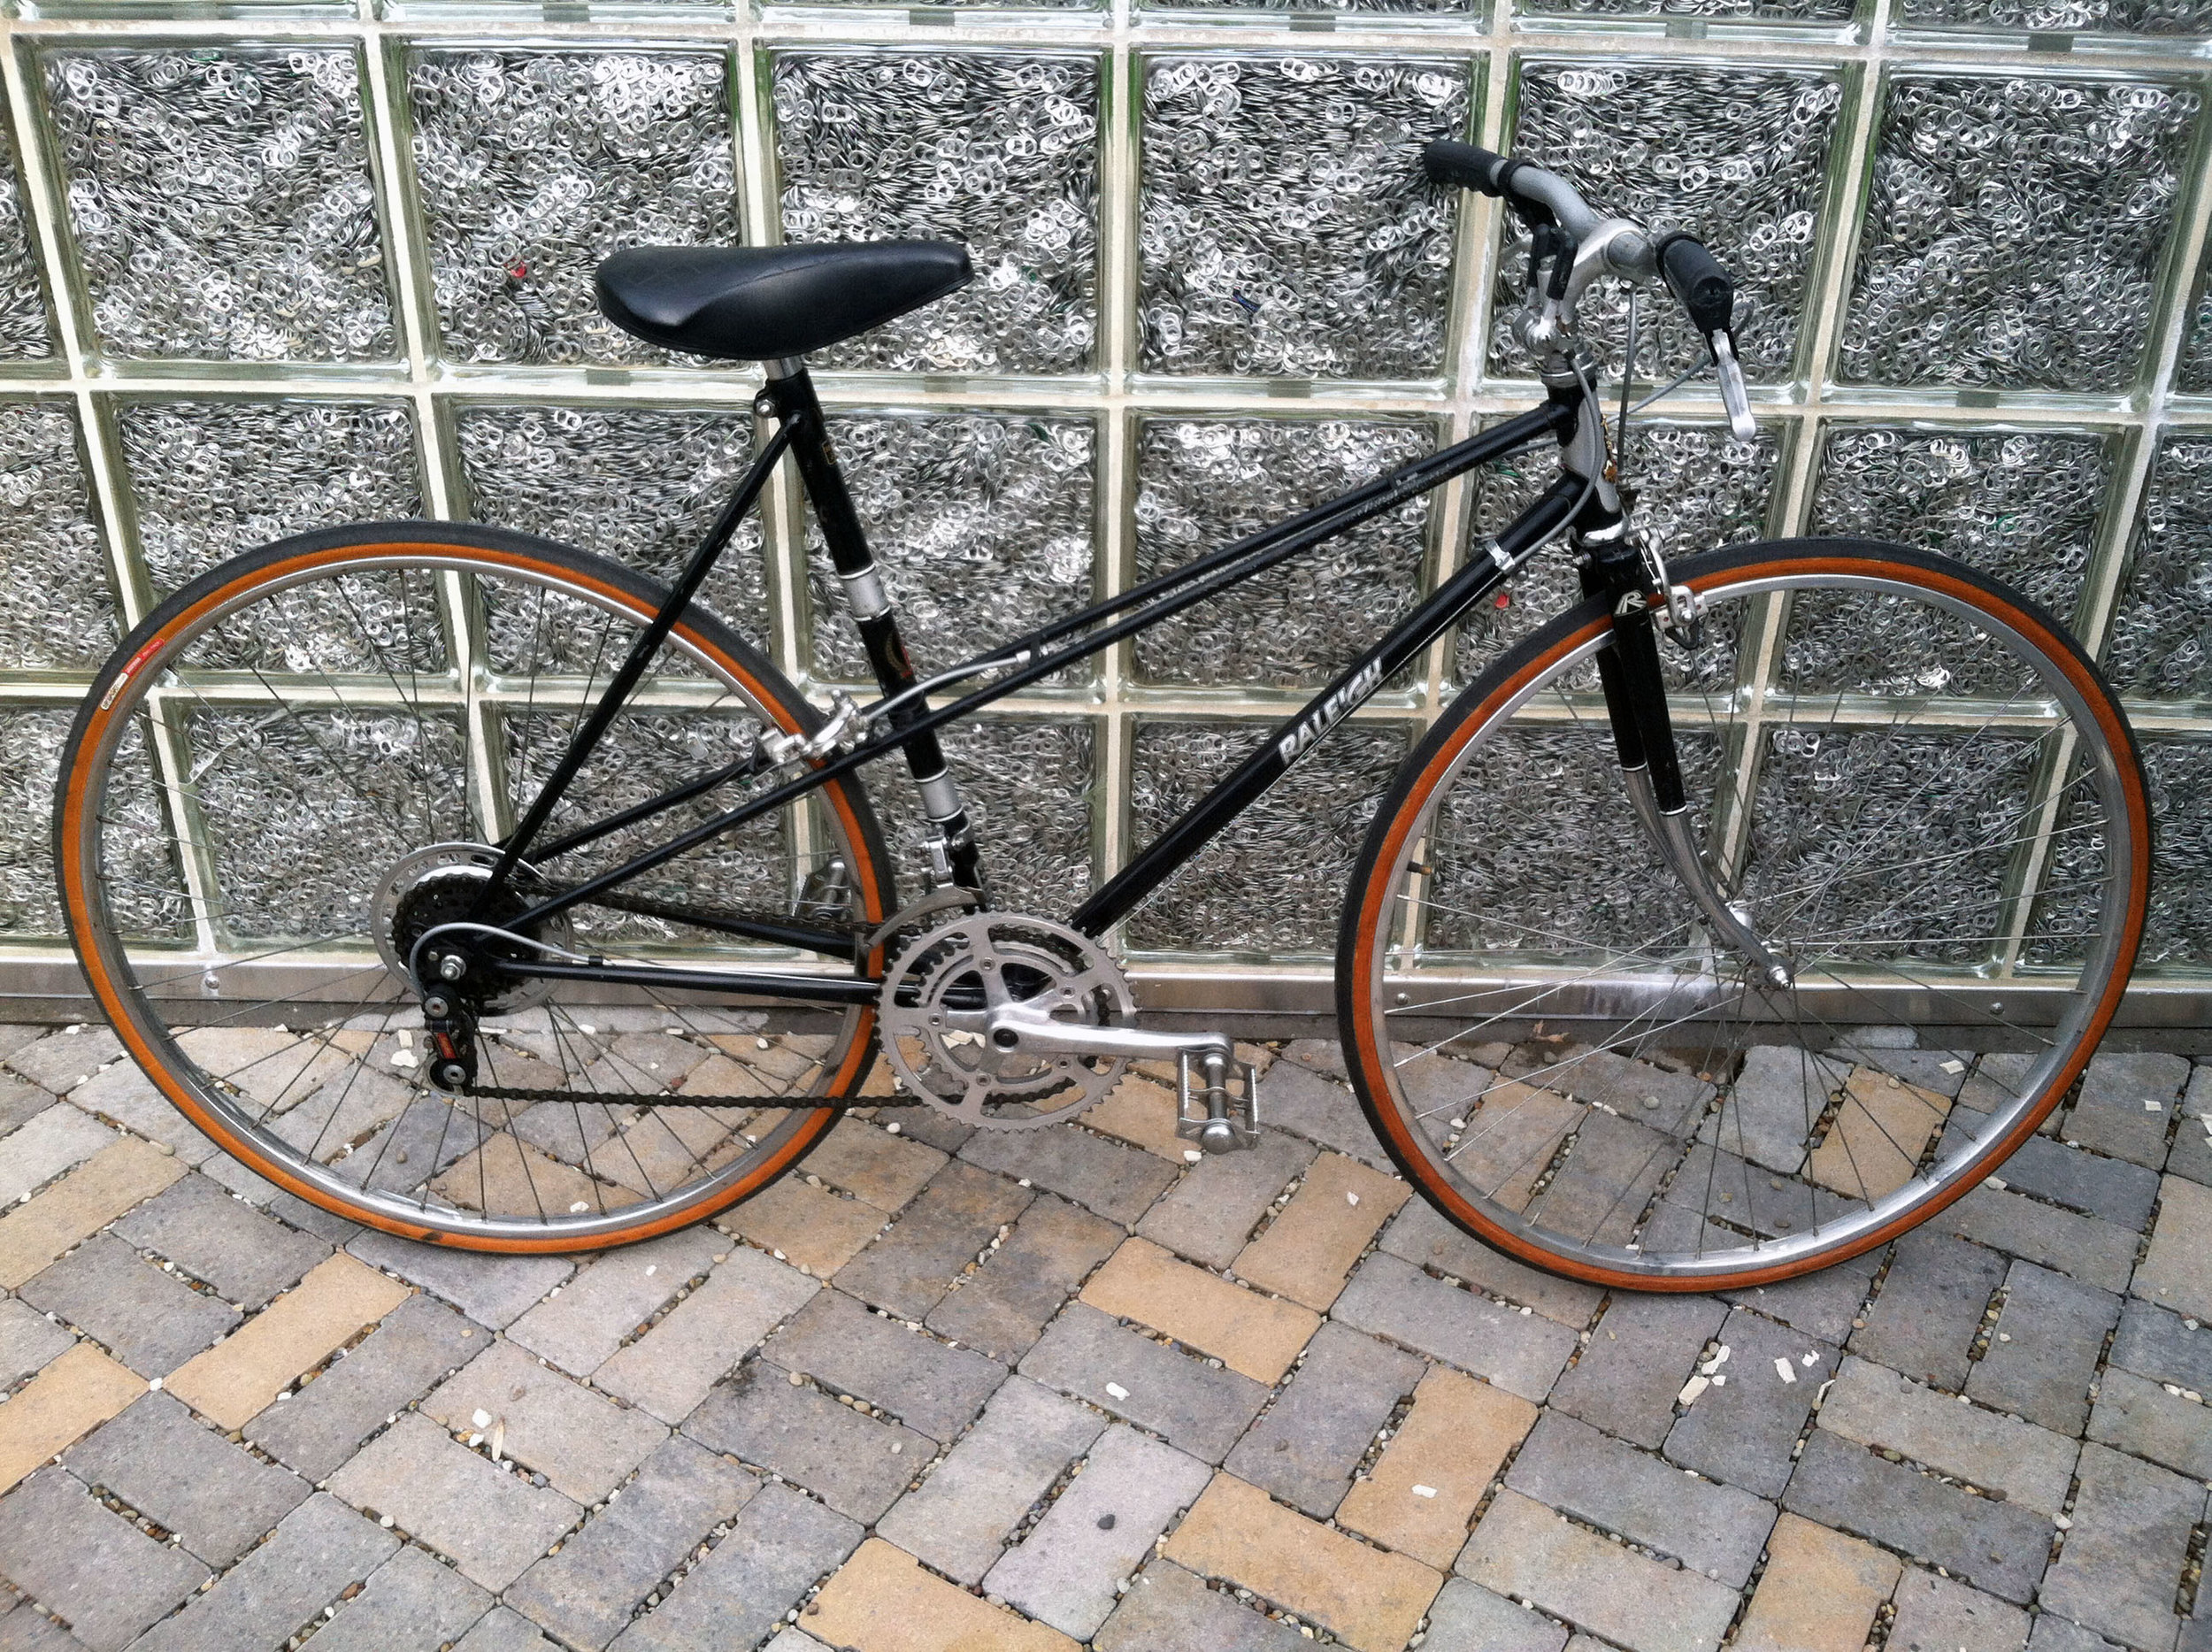 01 1981 Raleigh Super Record Mixte.jpg